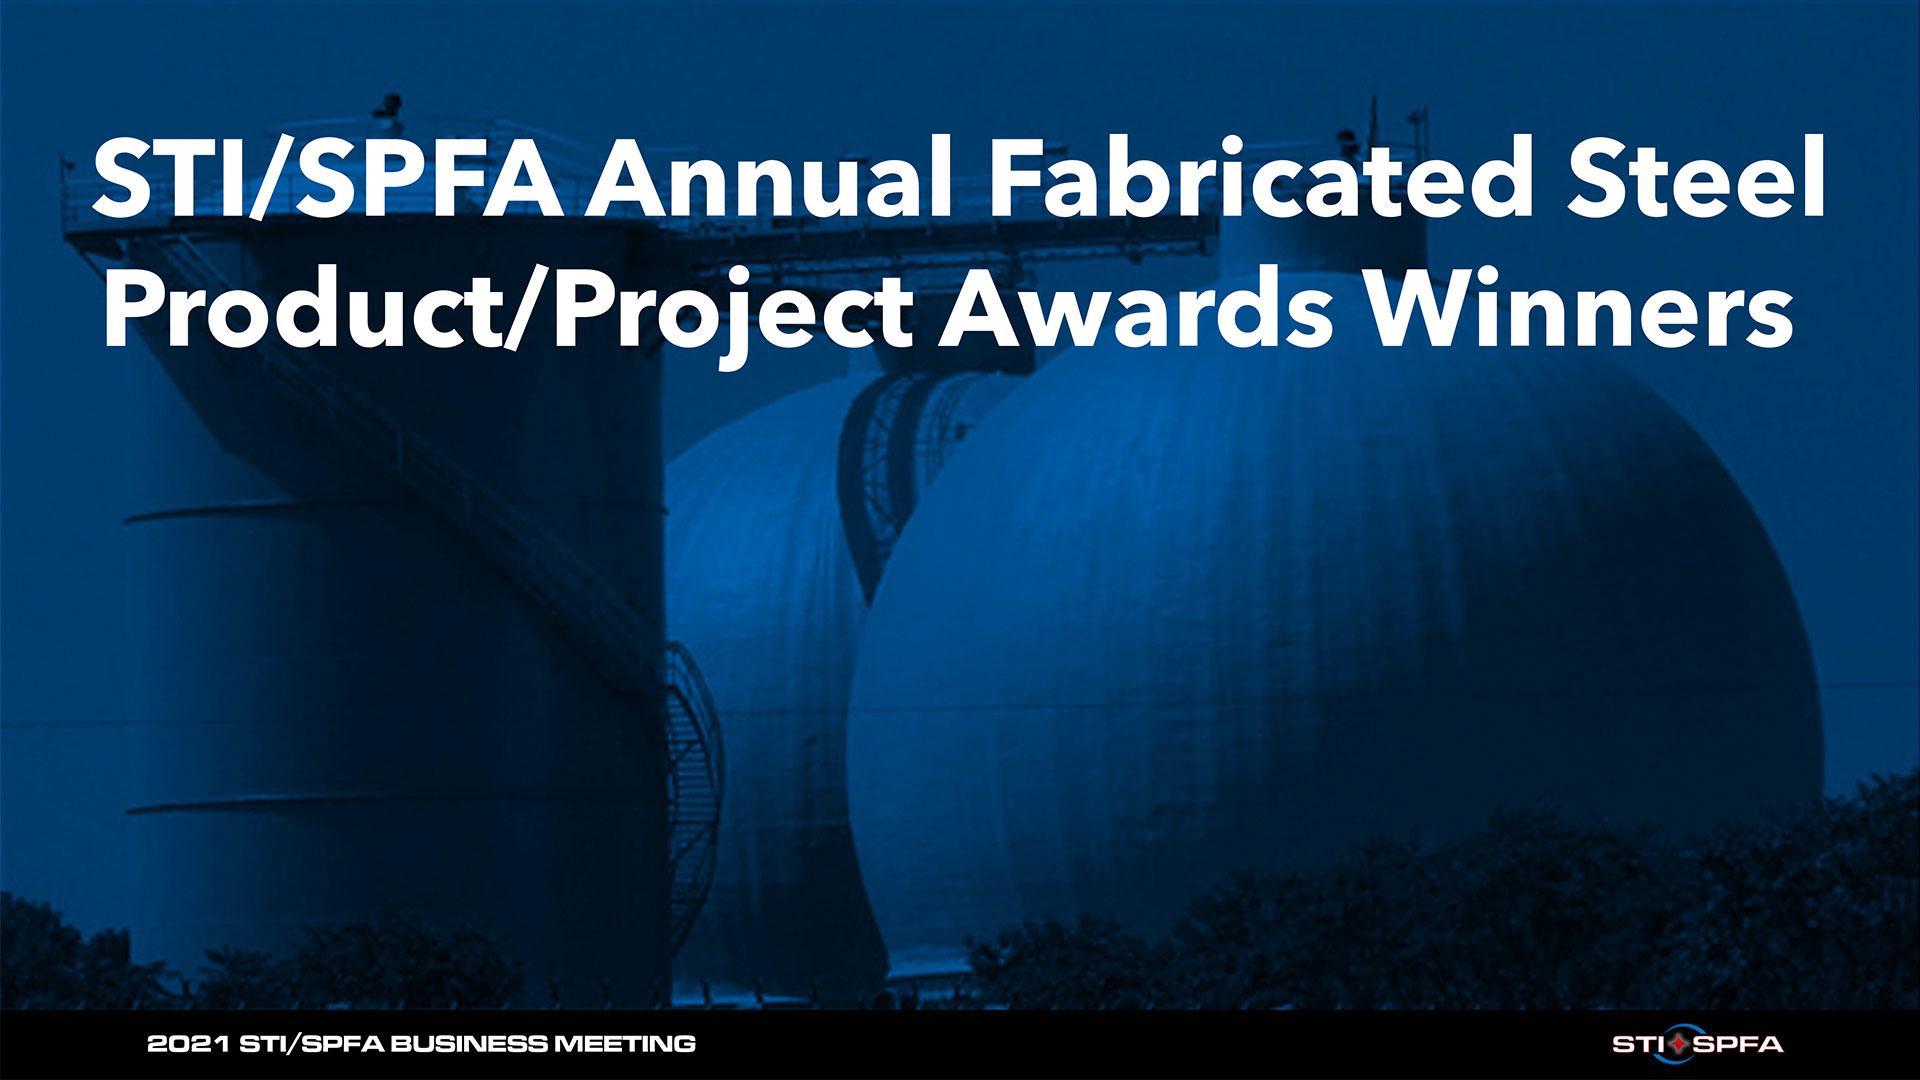 2020 STI/SPFA Annual Fabricated Steel Product/Project Awards Presentation